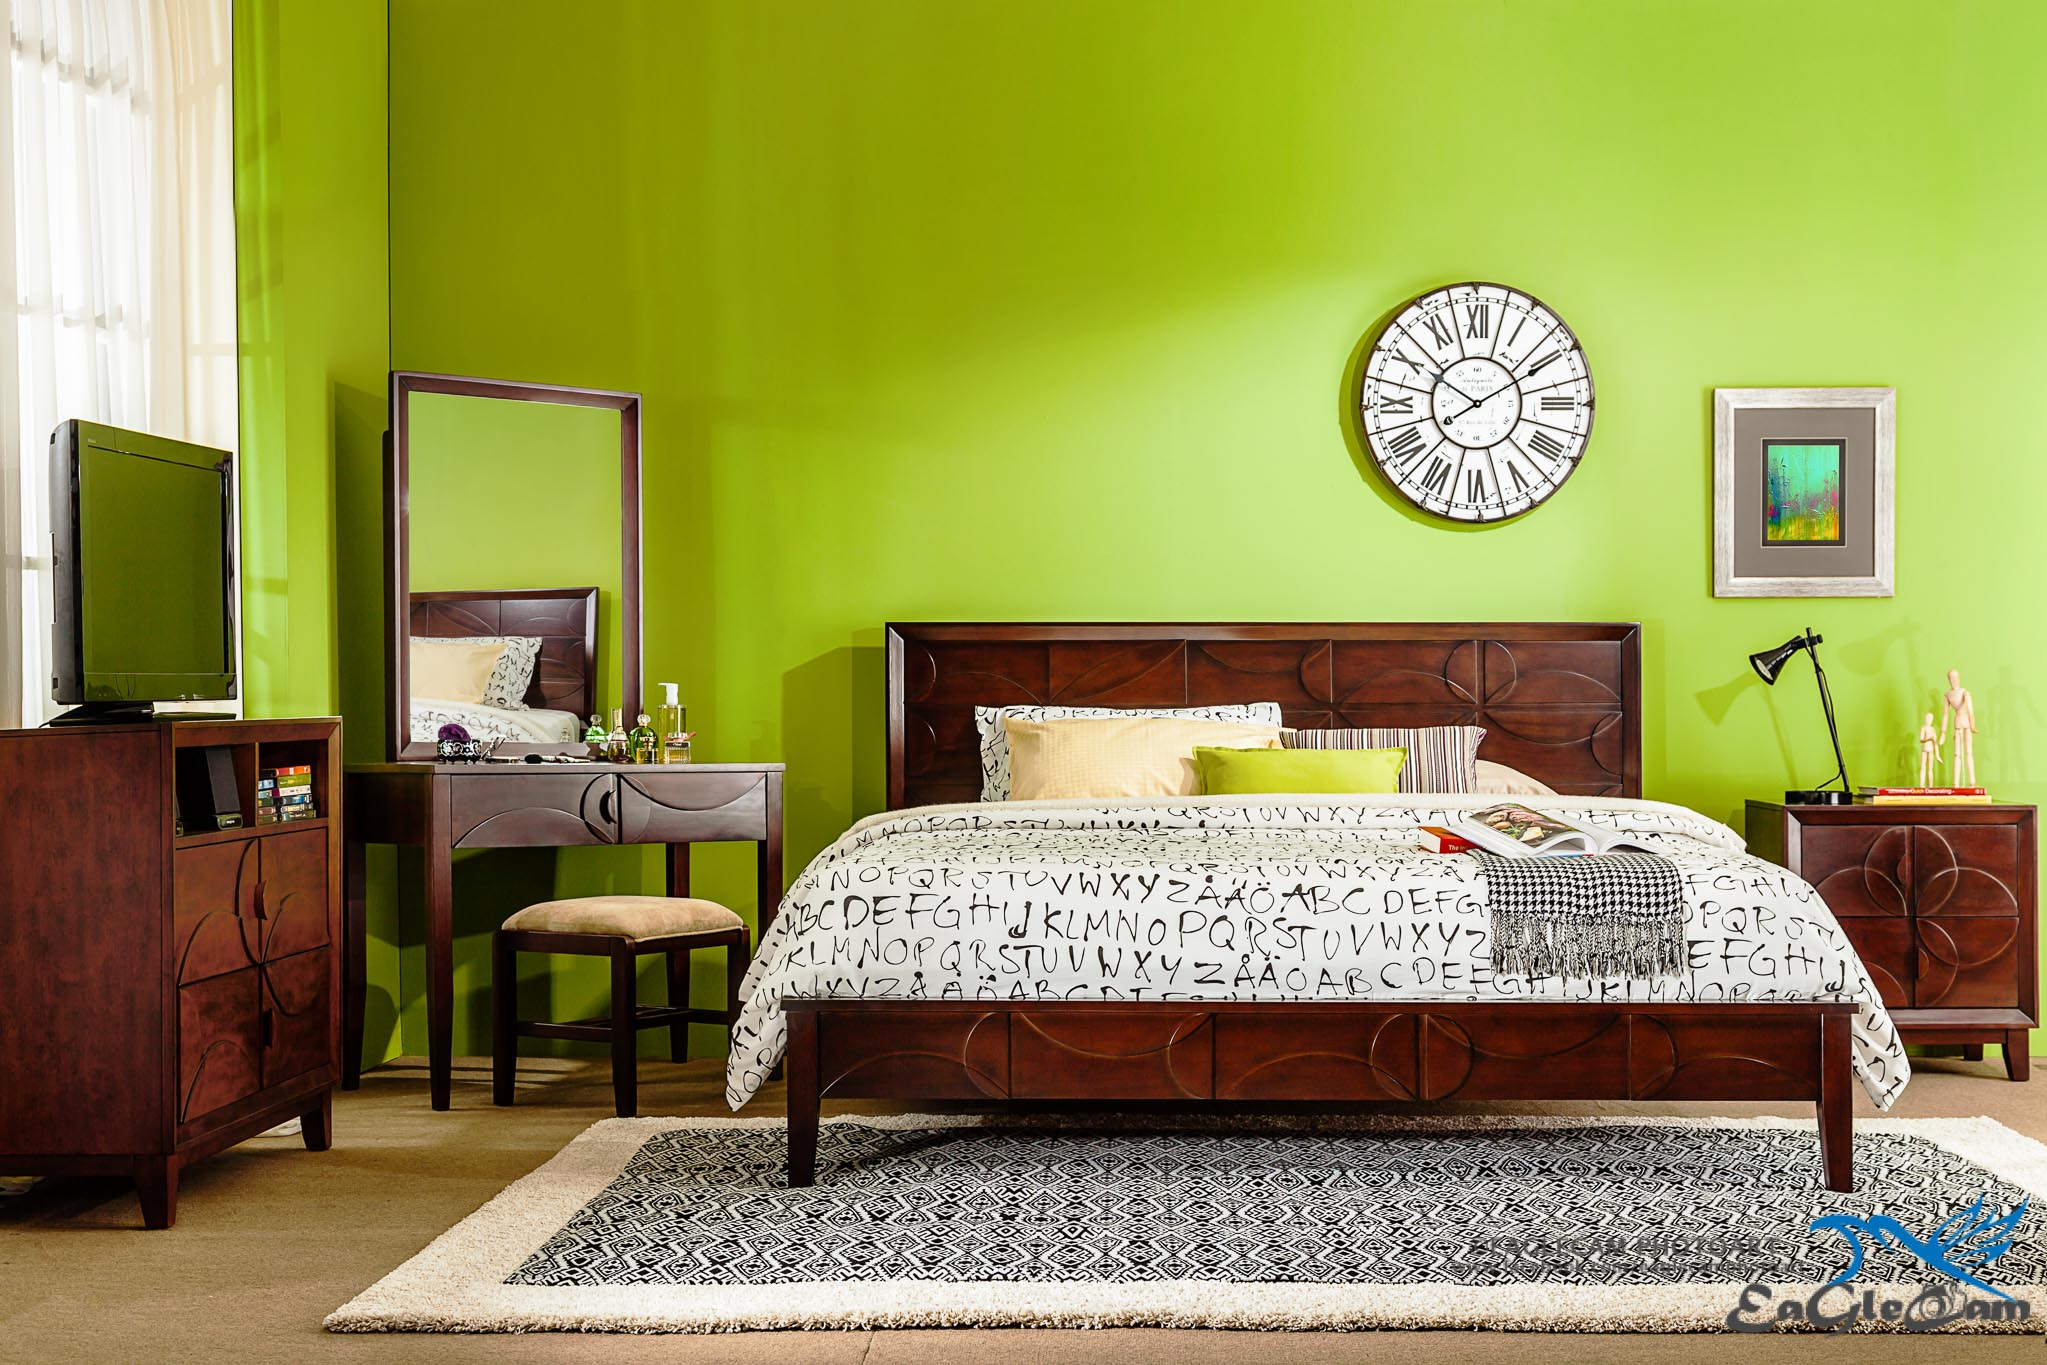 Furniture Photography_13